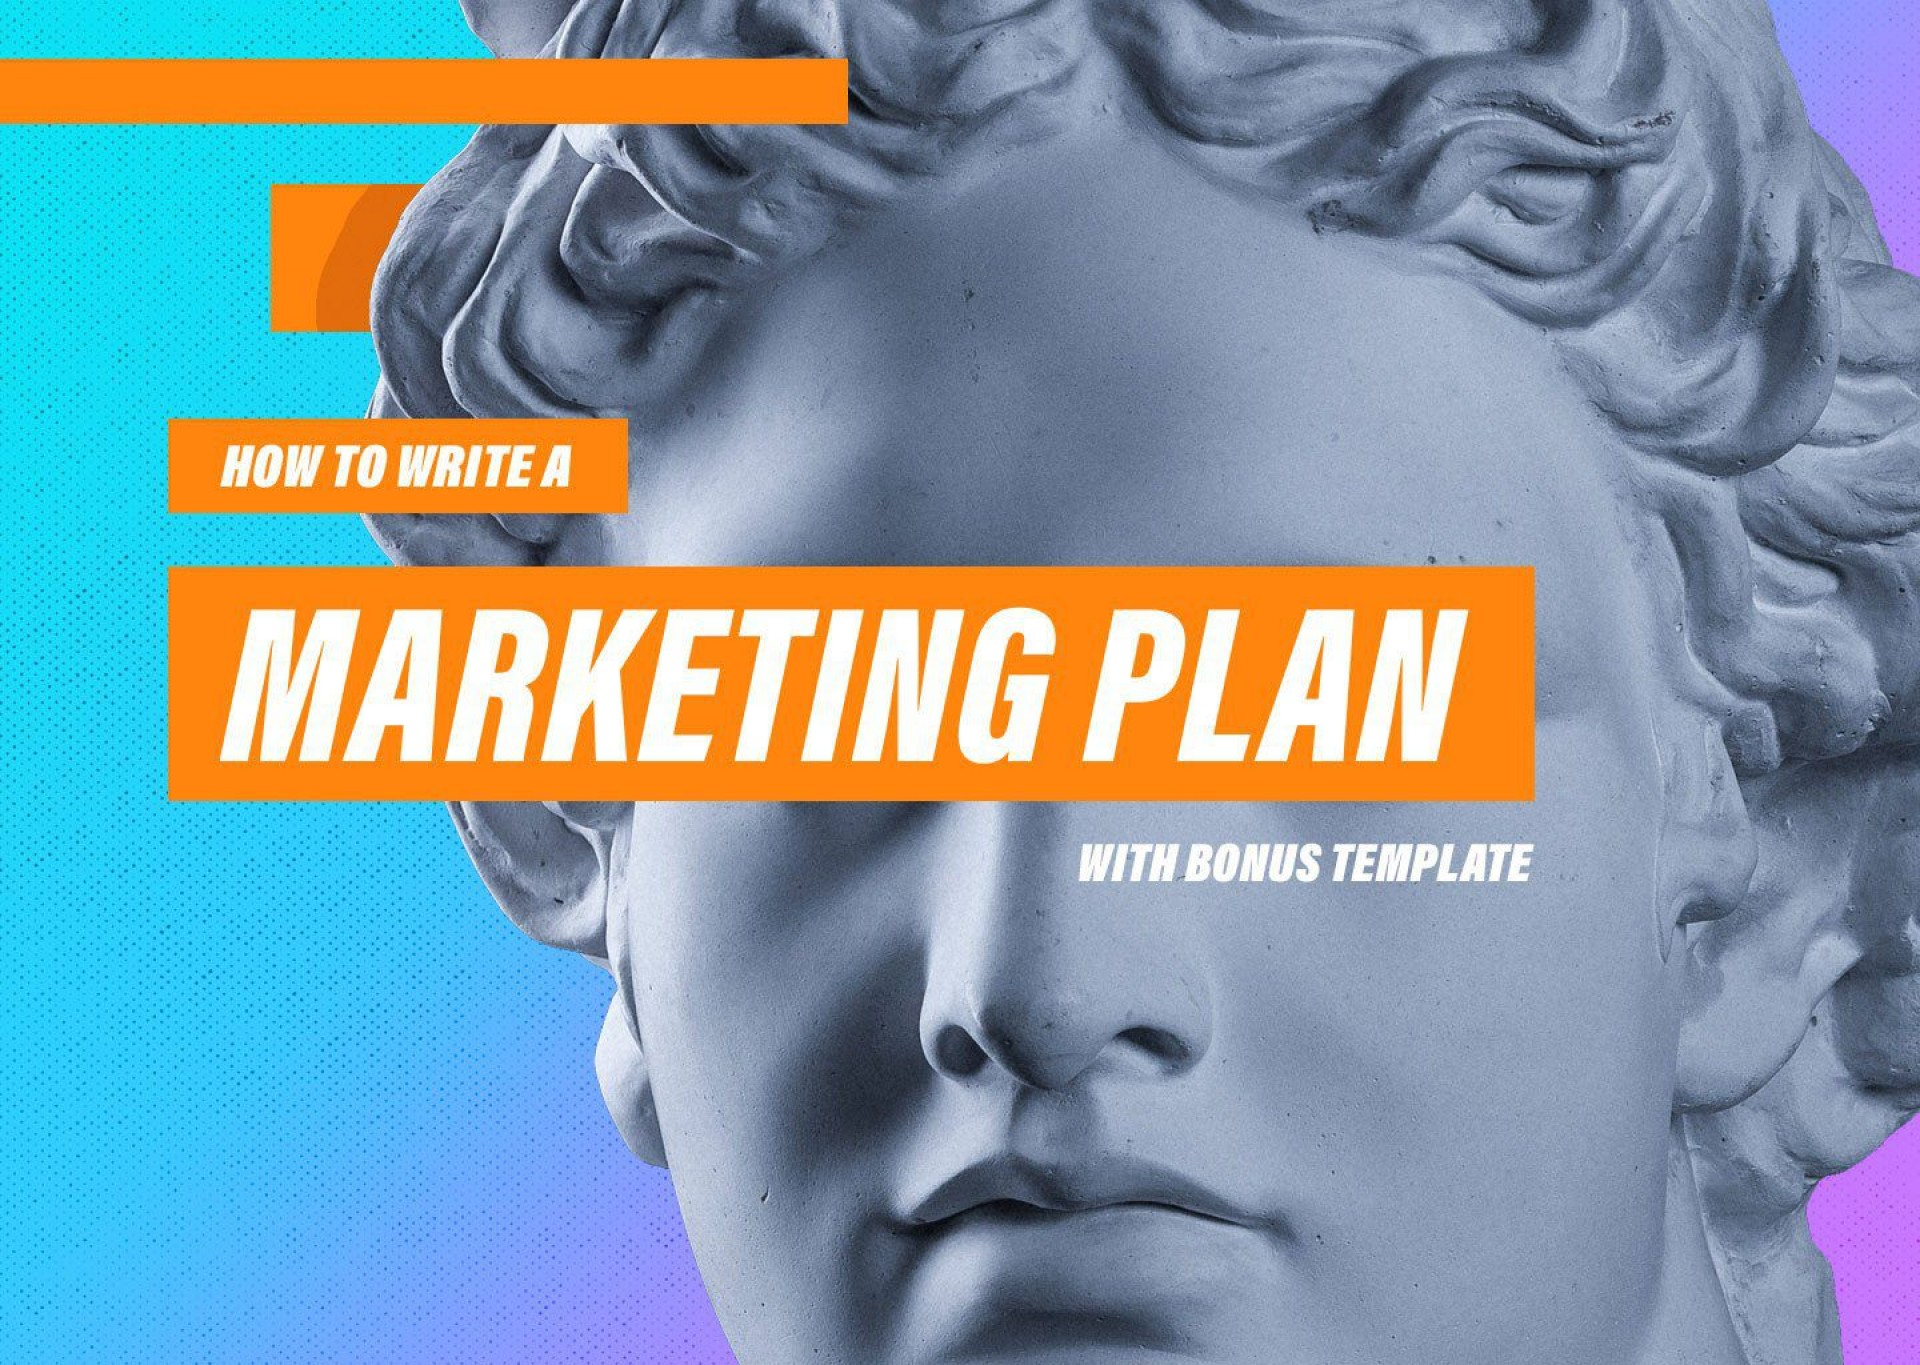 007 Top Free Hotel Sale And Marketing Plan Template High Def 1920